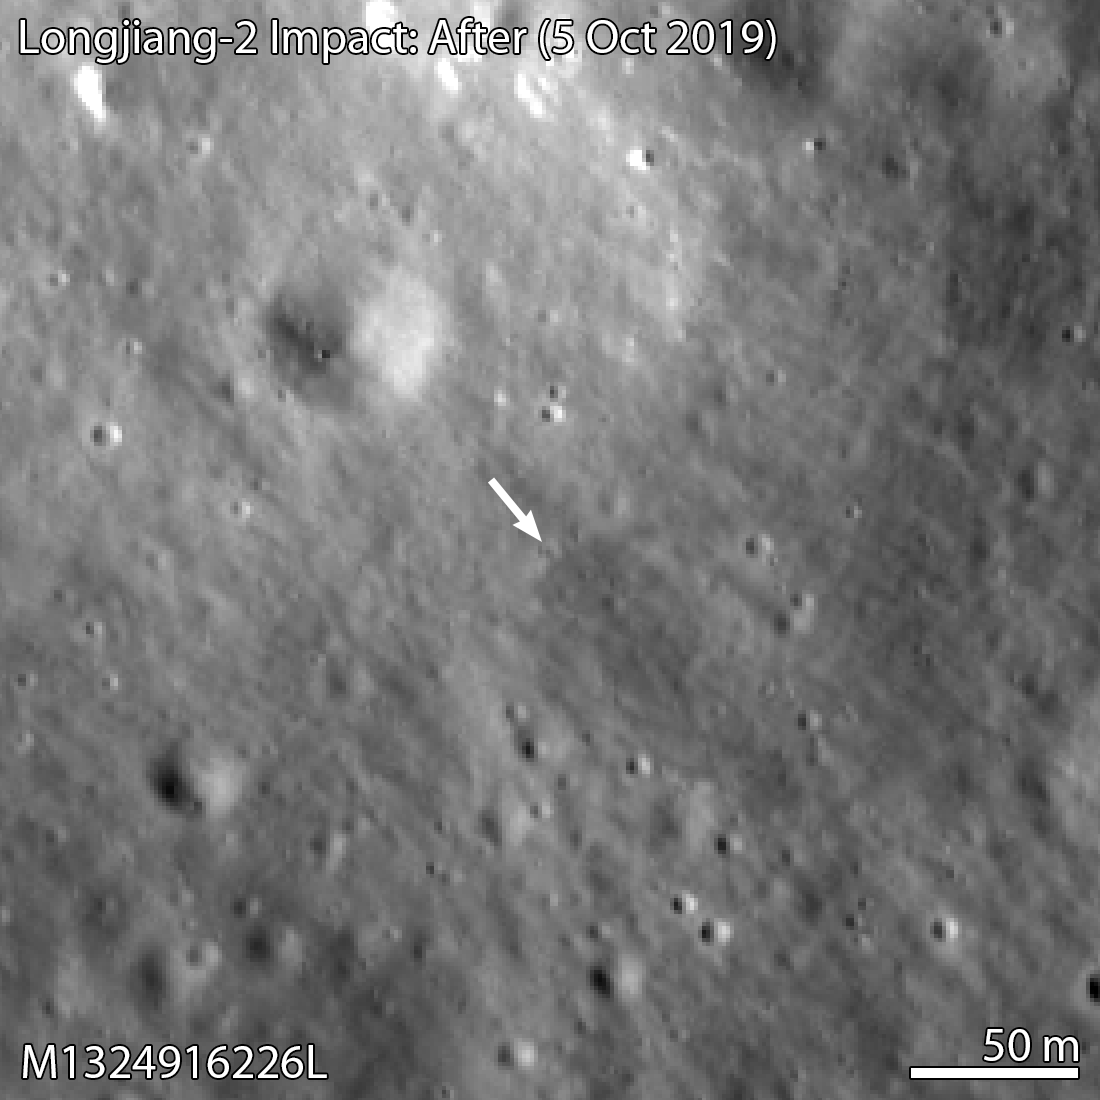 LROC NAC image of new crater, likely from Longjiang 2 impact